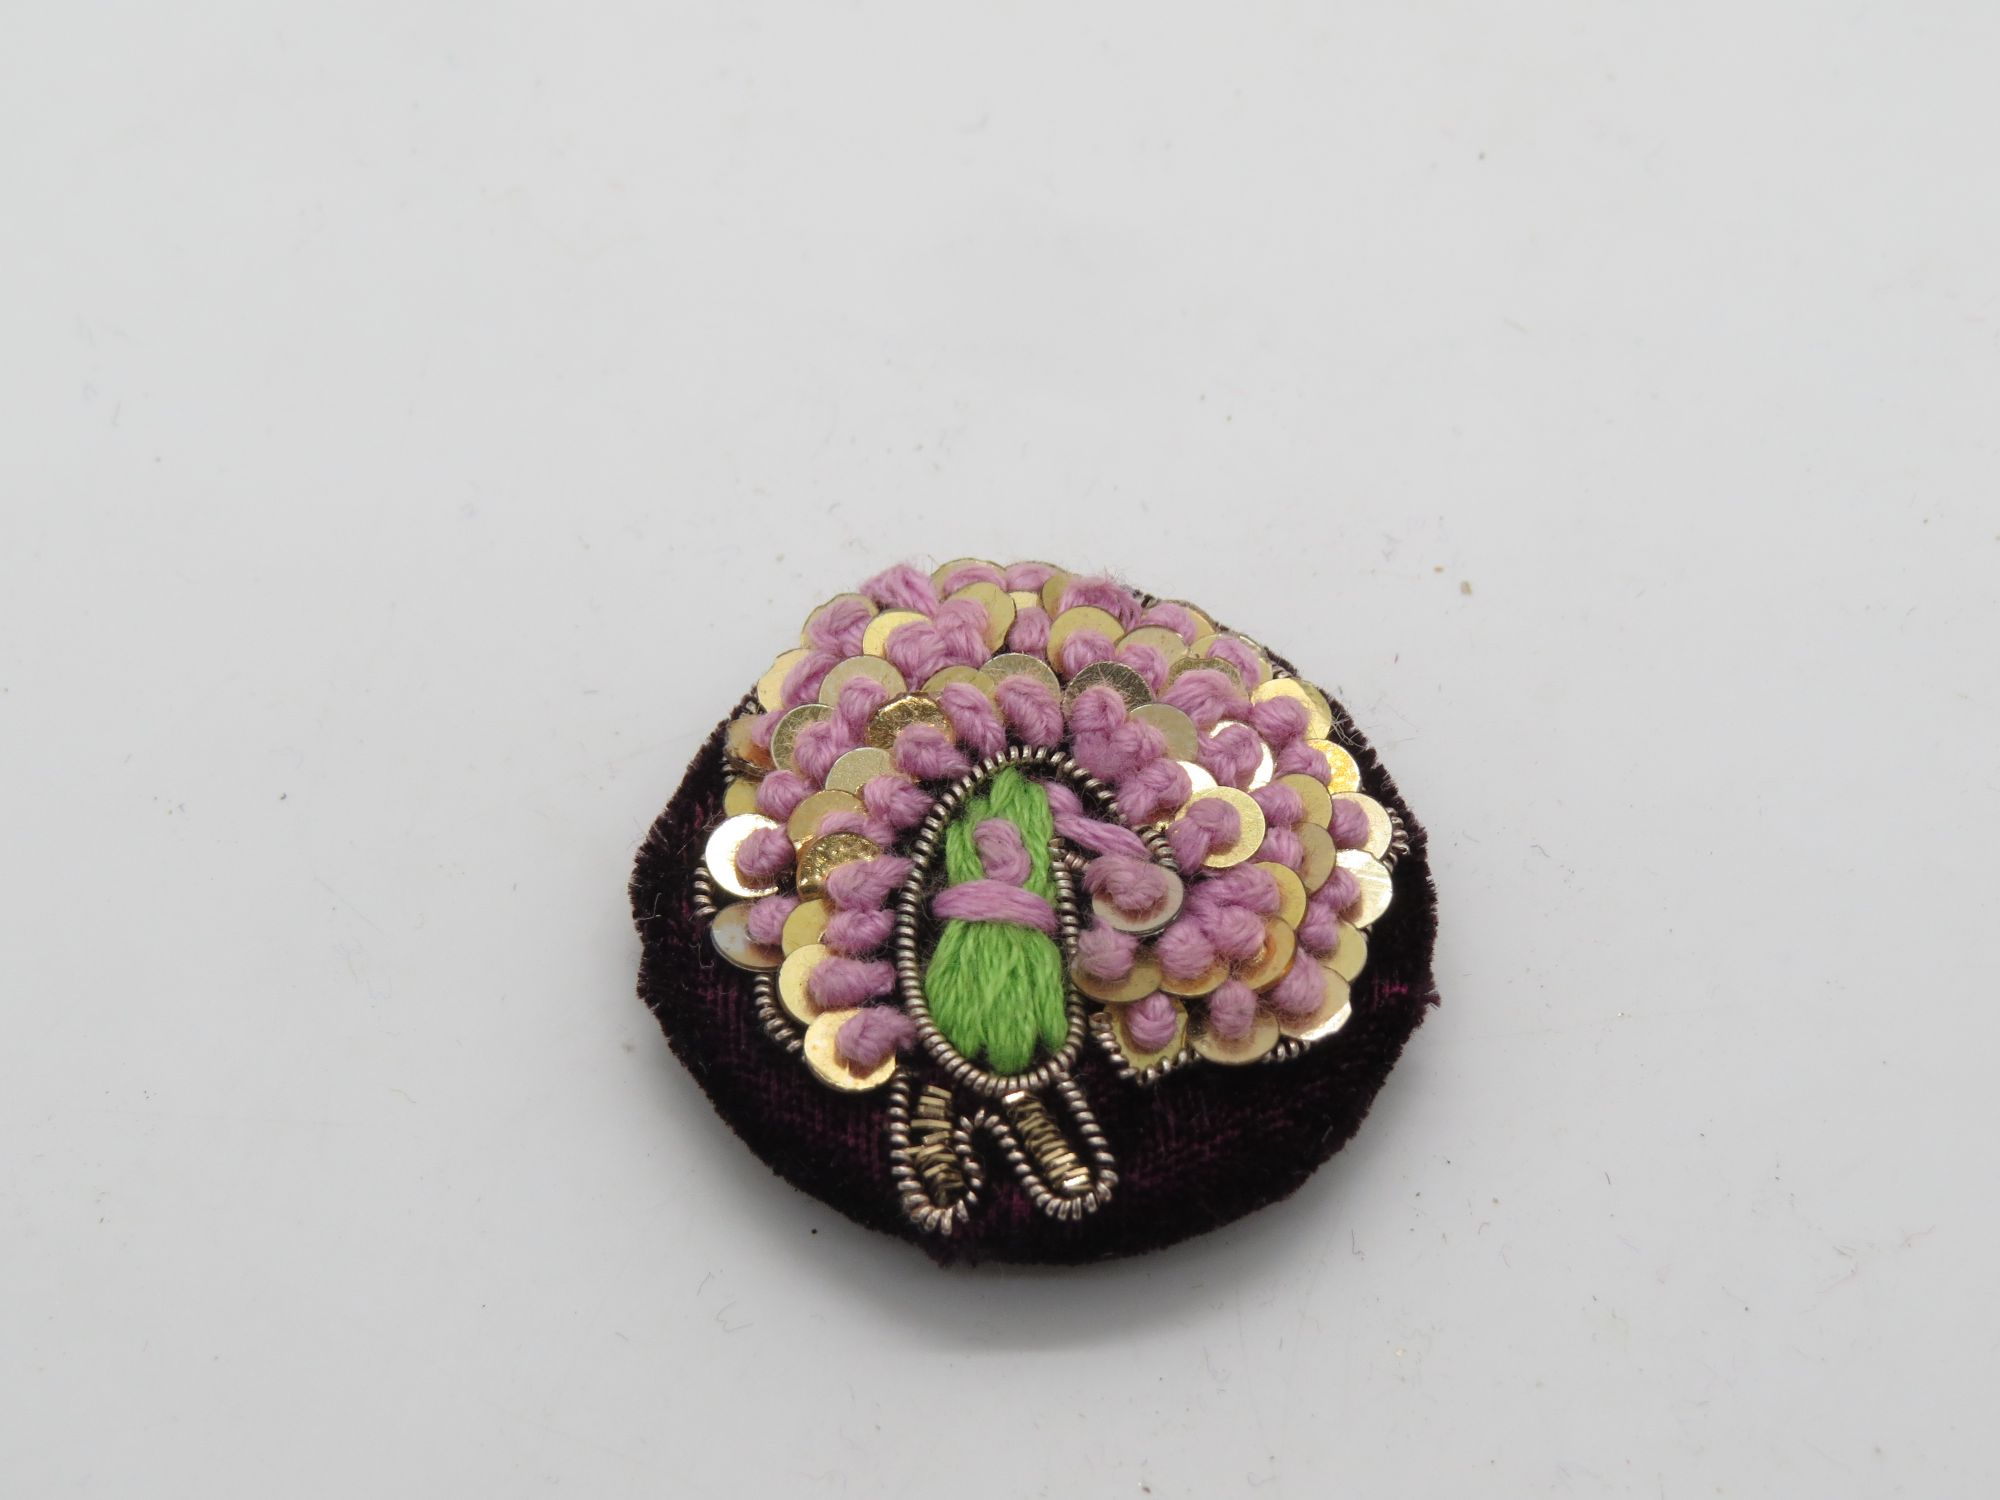 Hand Zardozi Thred Peacock Work Embellishment Button Indian Fancy Zari Zardozi Bridesmaids Design Decorative Hand Crafted Fabric Thread Work Sewing Buttons